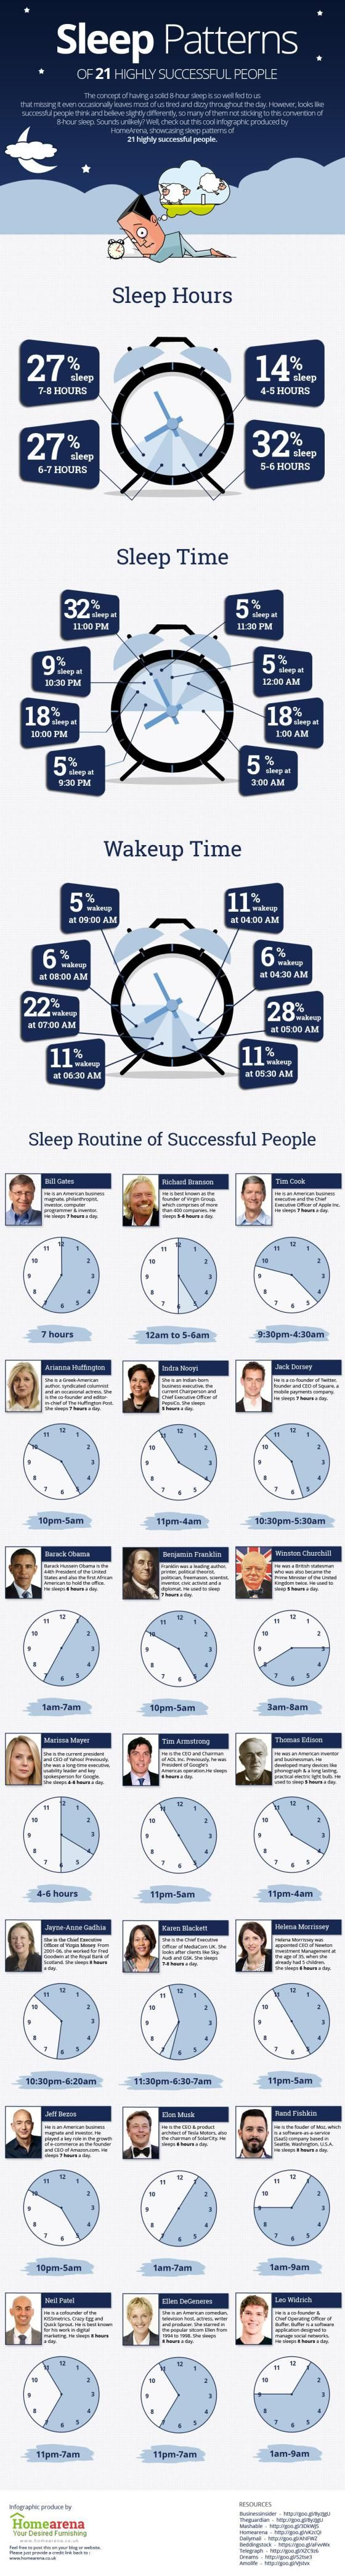 #sleep #patterns of successful people | #JackDorsey sleeps 7 hours a day!!! :) via TIME